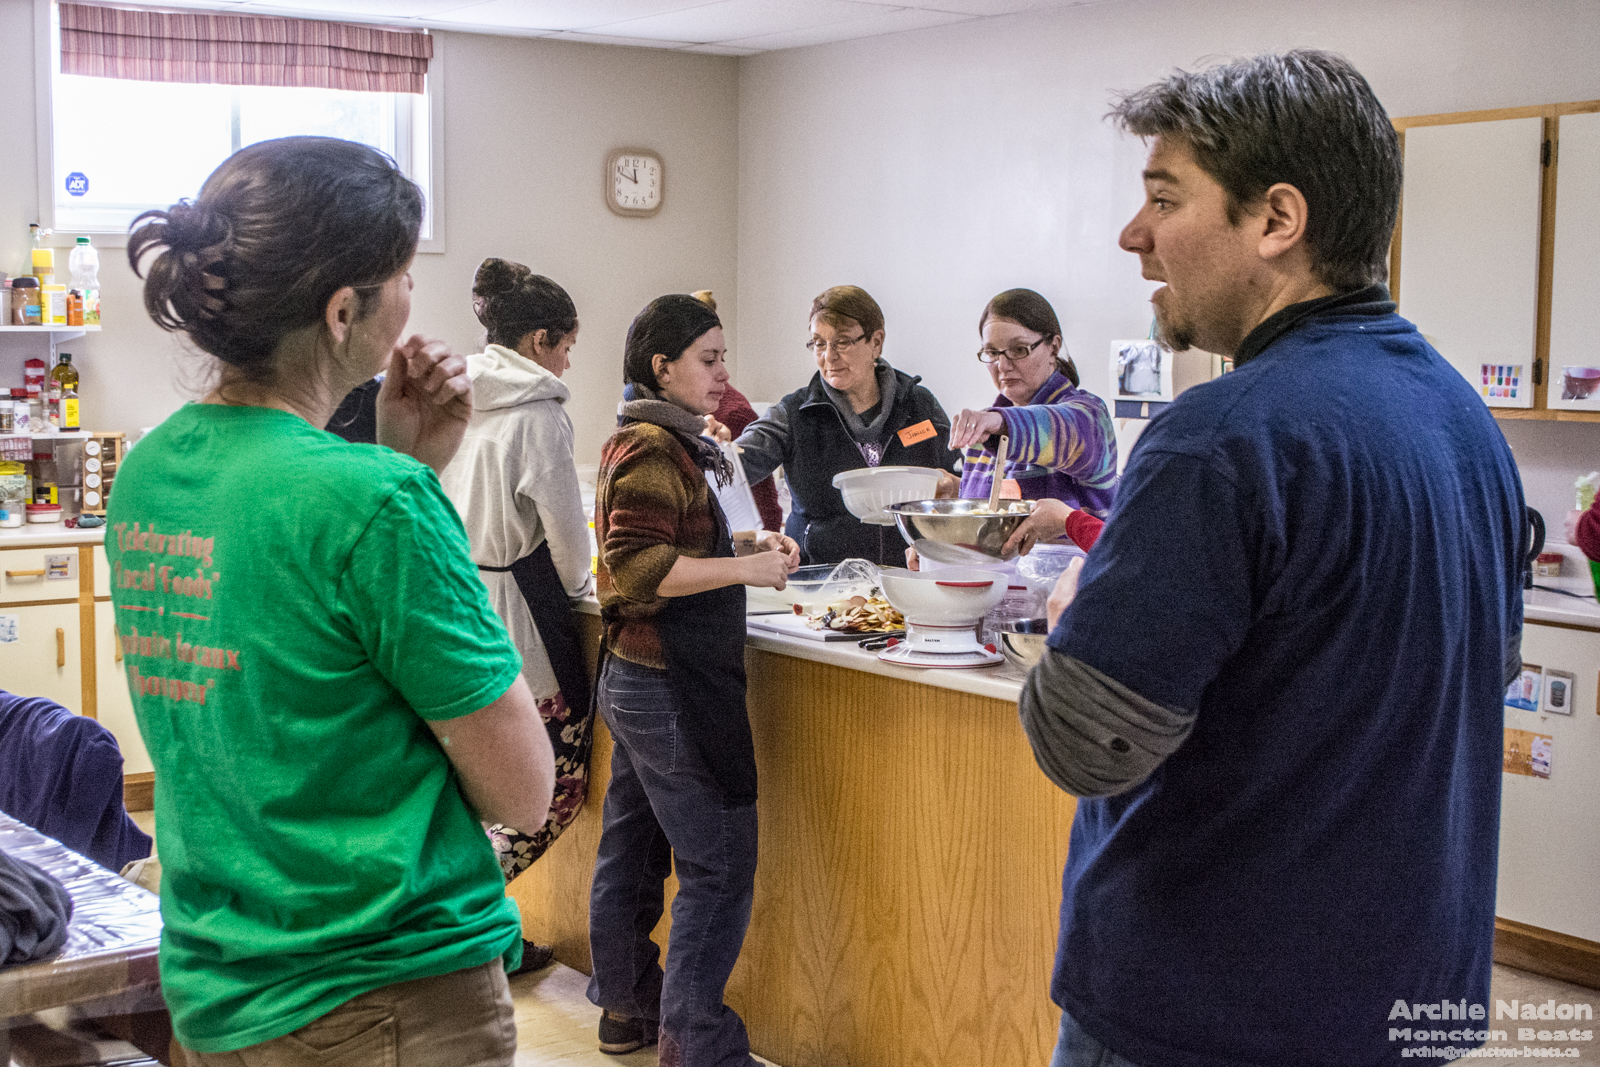 woman and man chatting while another group prepares food